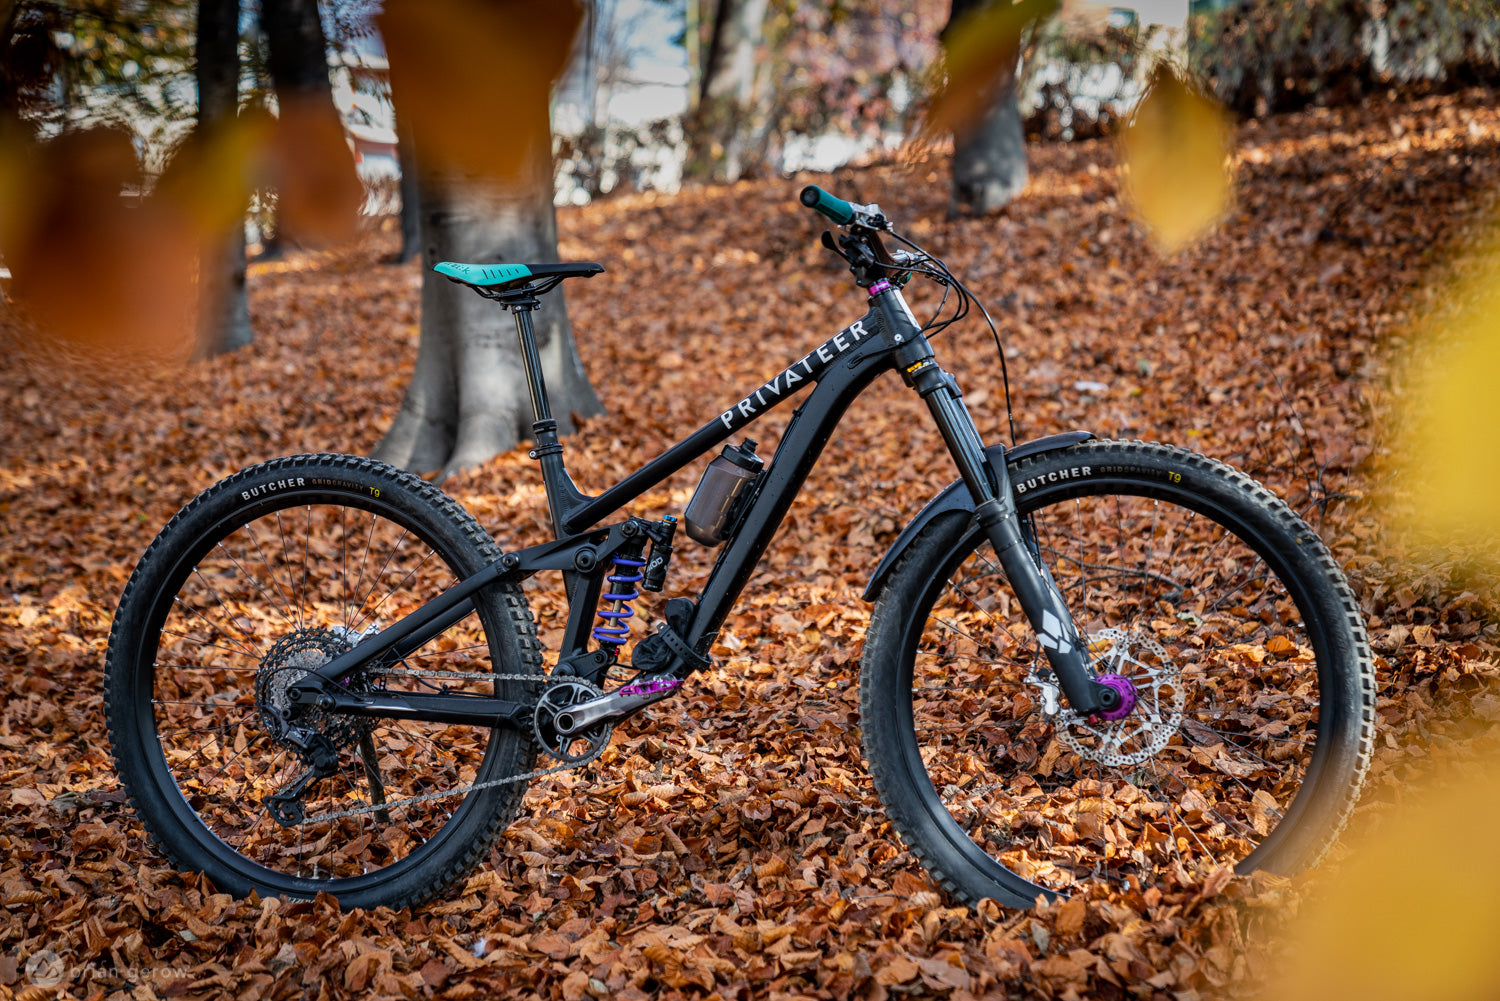 Singletracks photo of the Privateer 161 in the leaves